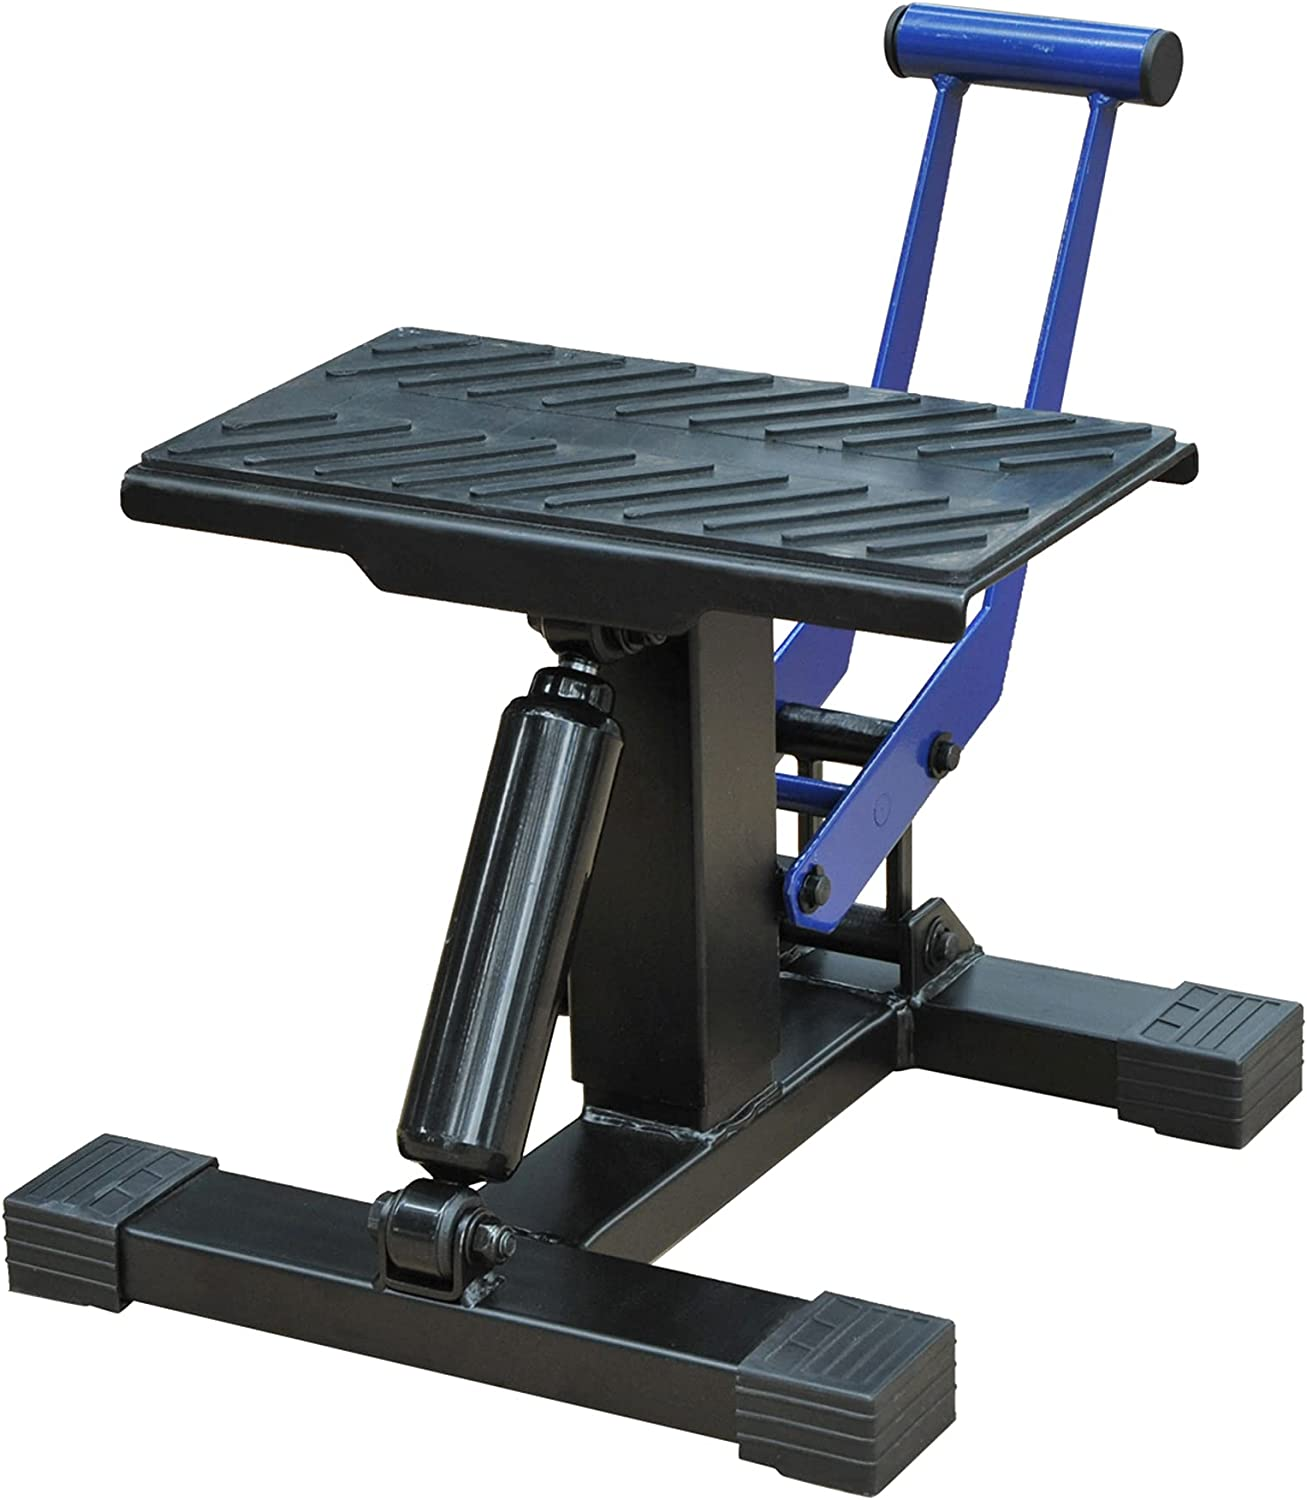 HOMCOM New product!! Portable Adjustable Al sold out. Steel Motorcycle Stand Repa Bike Lift